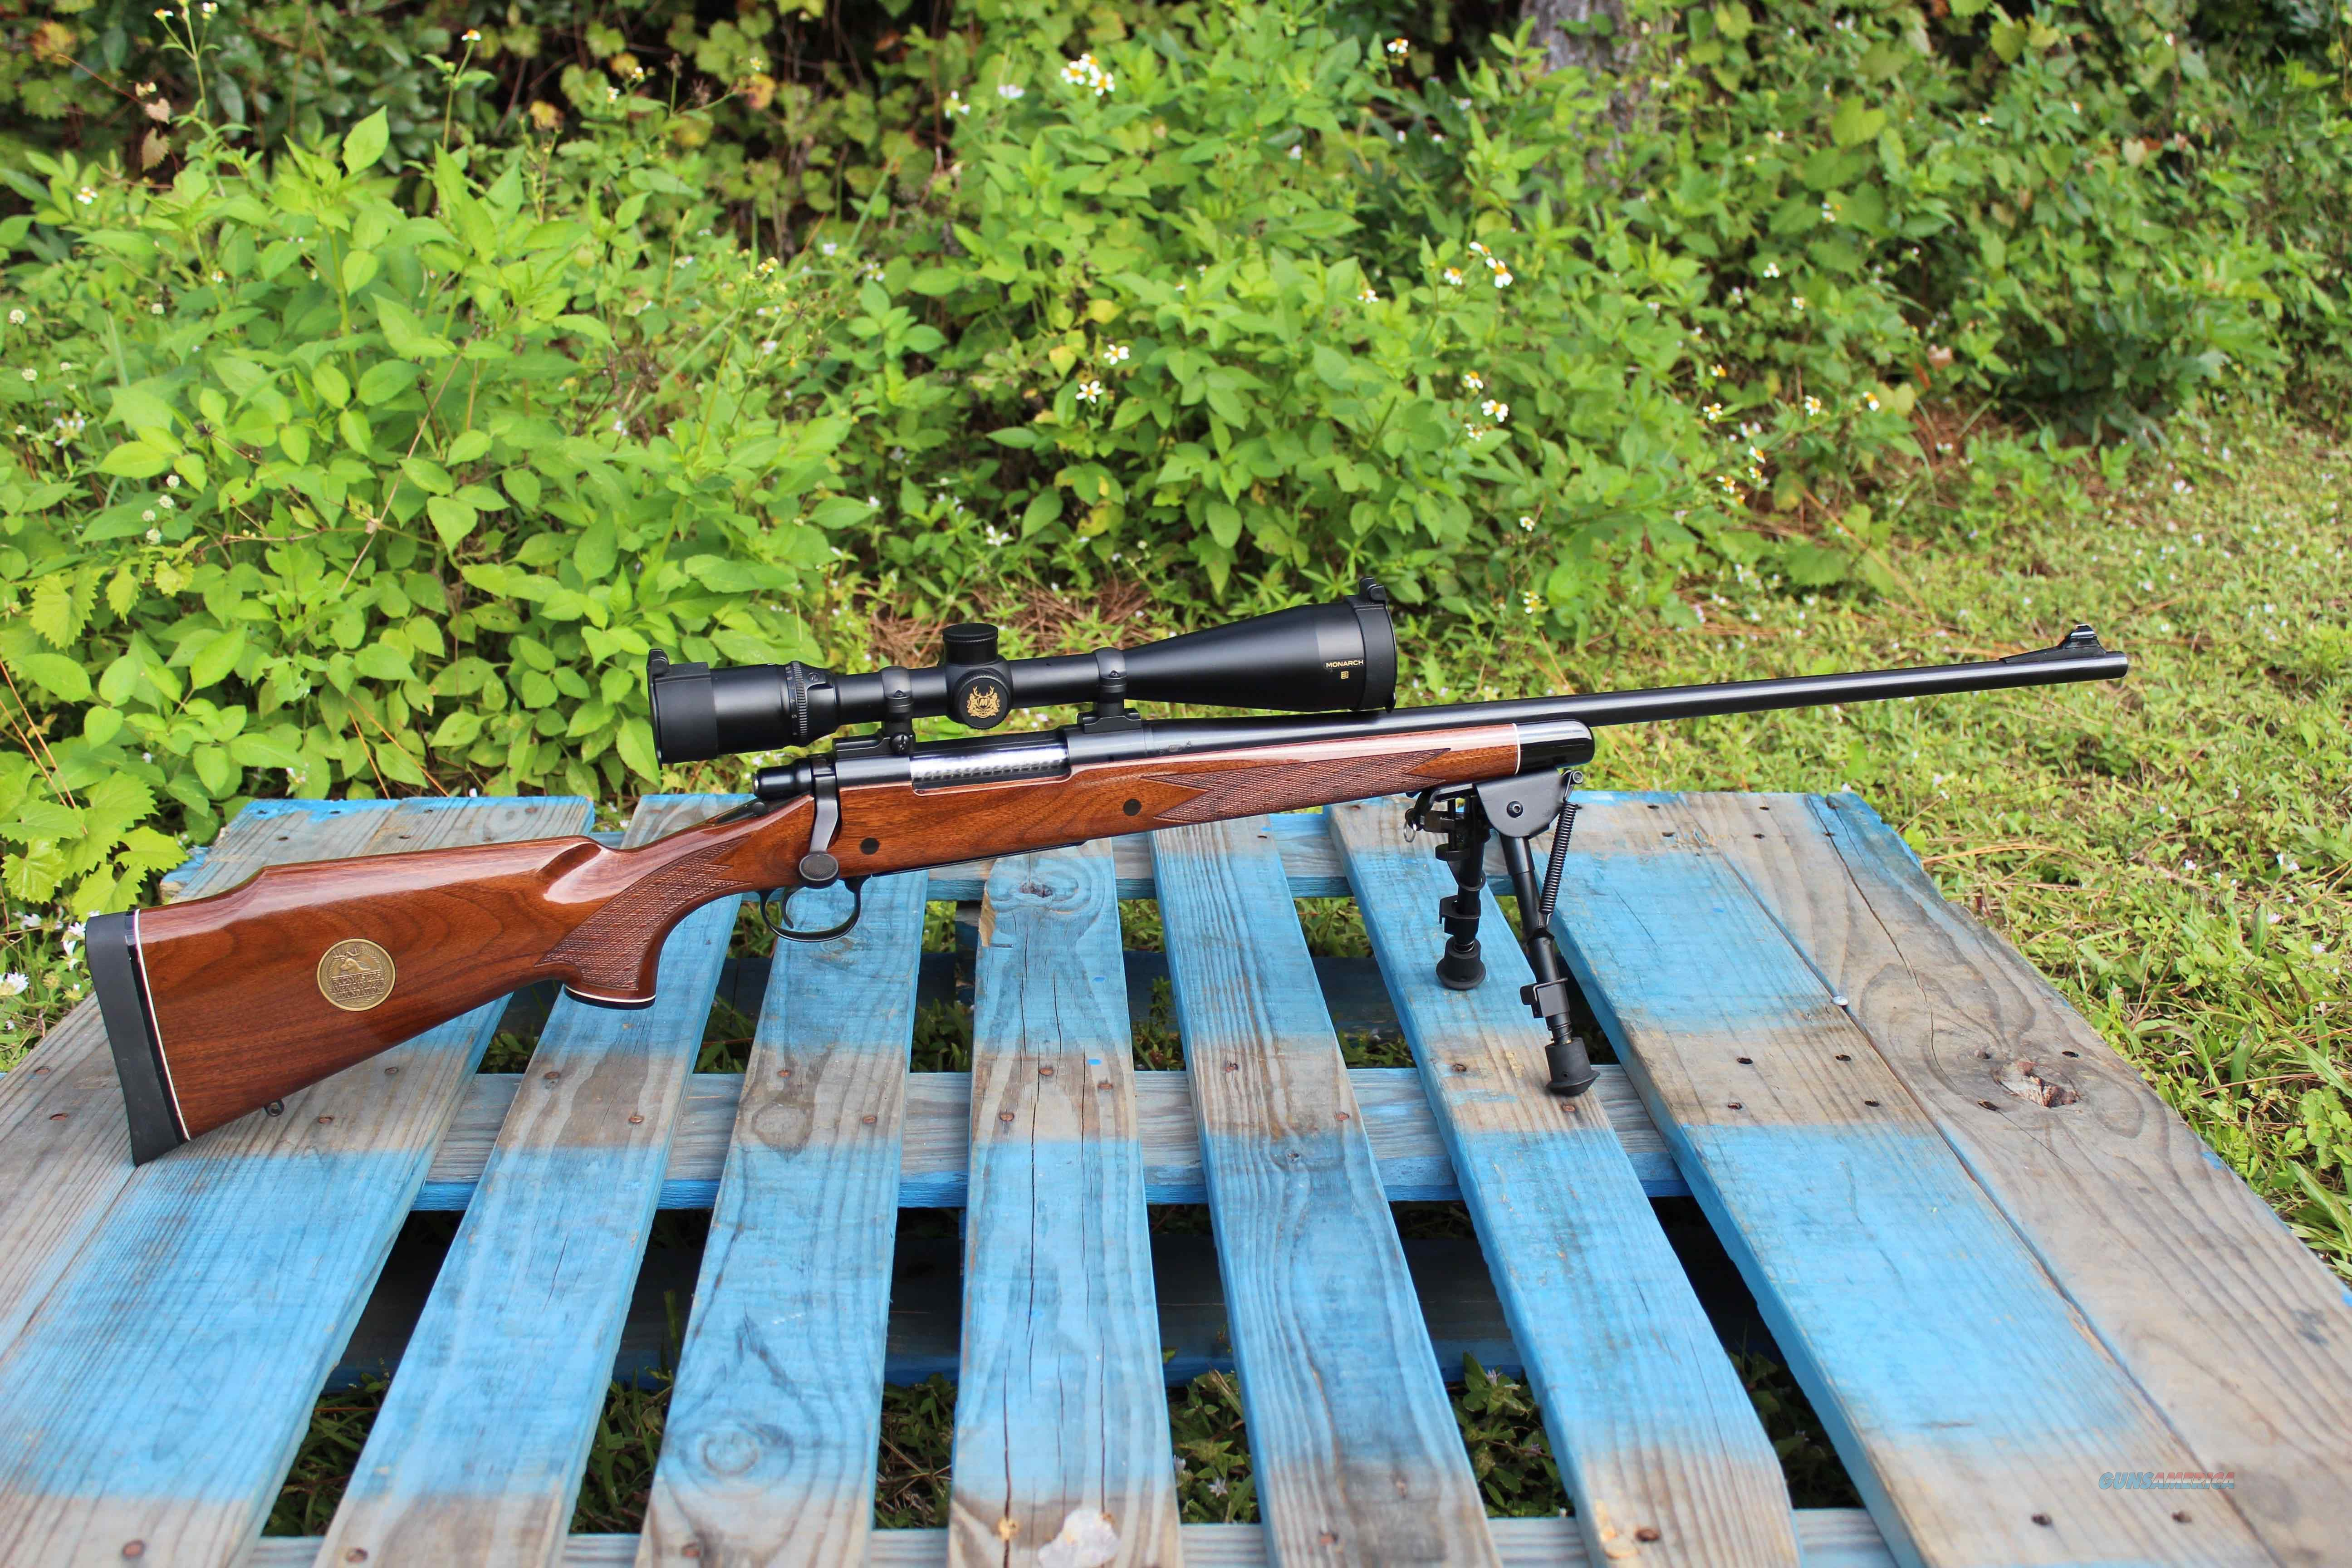 1996 Remington 700 BDL - 7mm Rem Mag  Guns > Rifles > Remington Rifles - Modern > Model 700 > Sporting